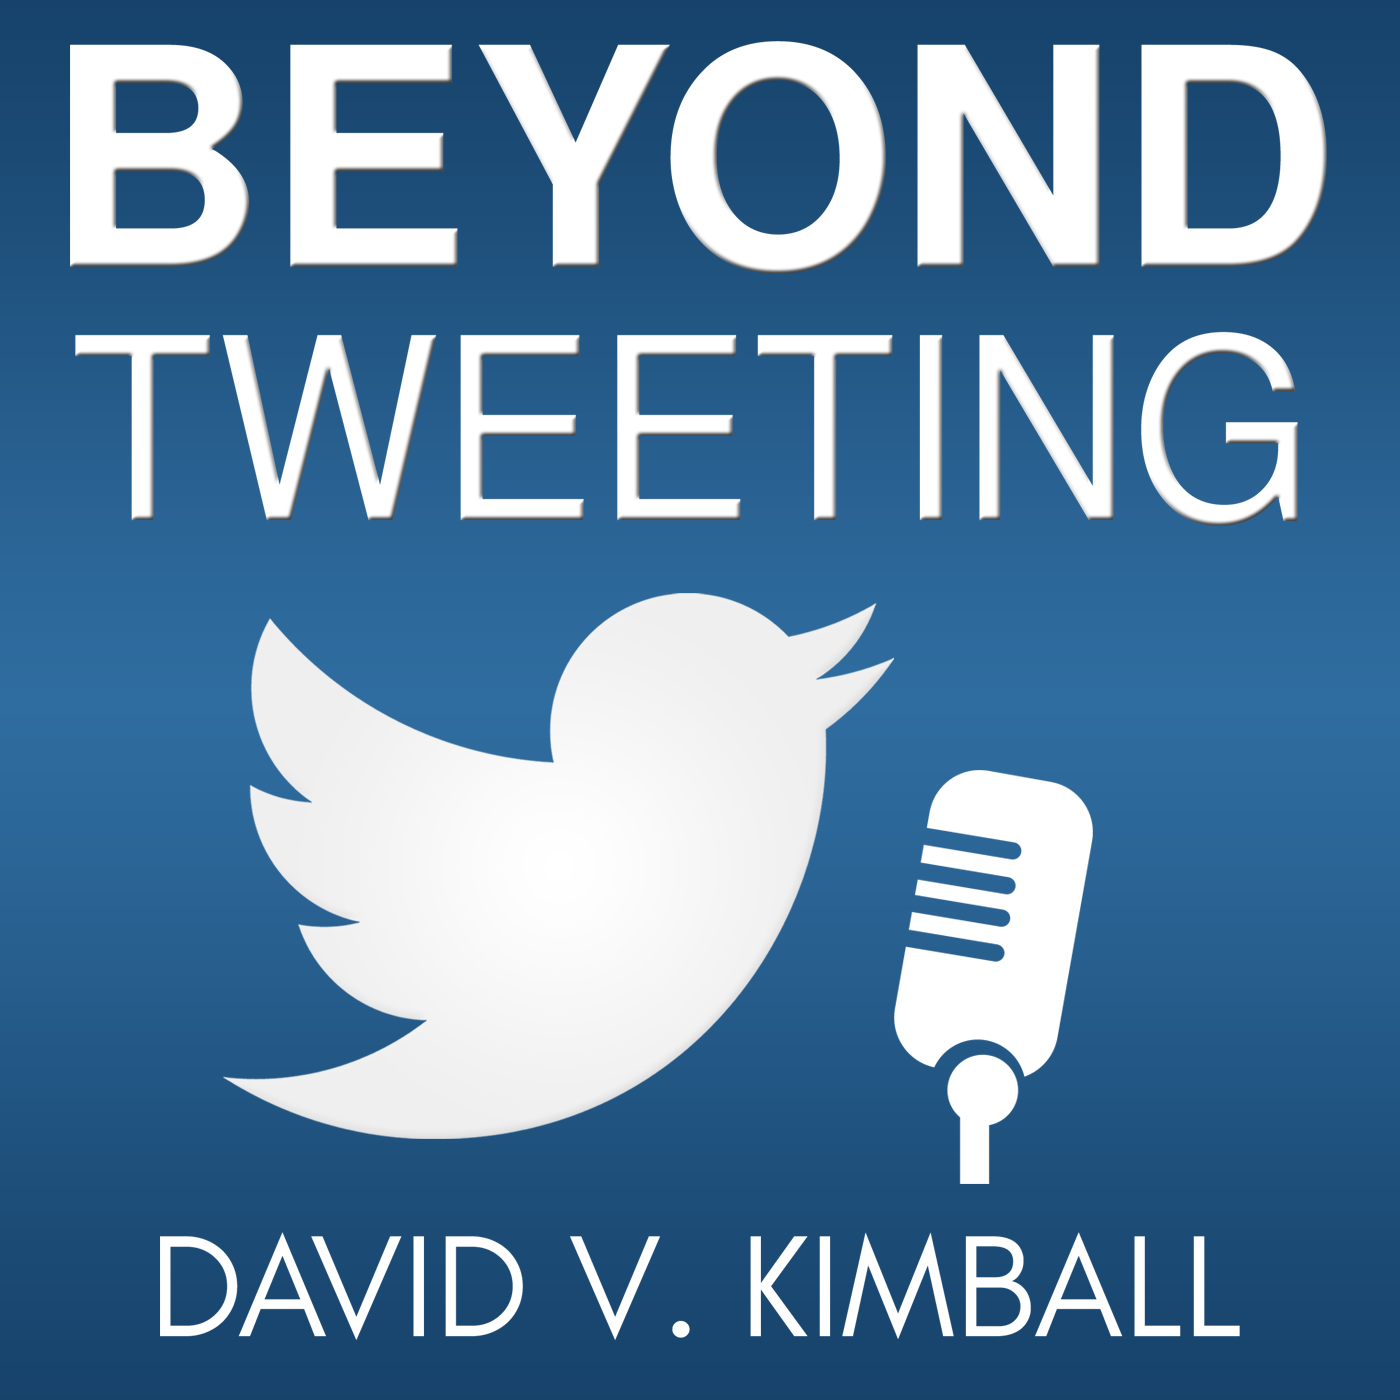 Beyond Tweeting